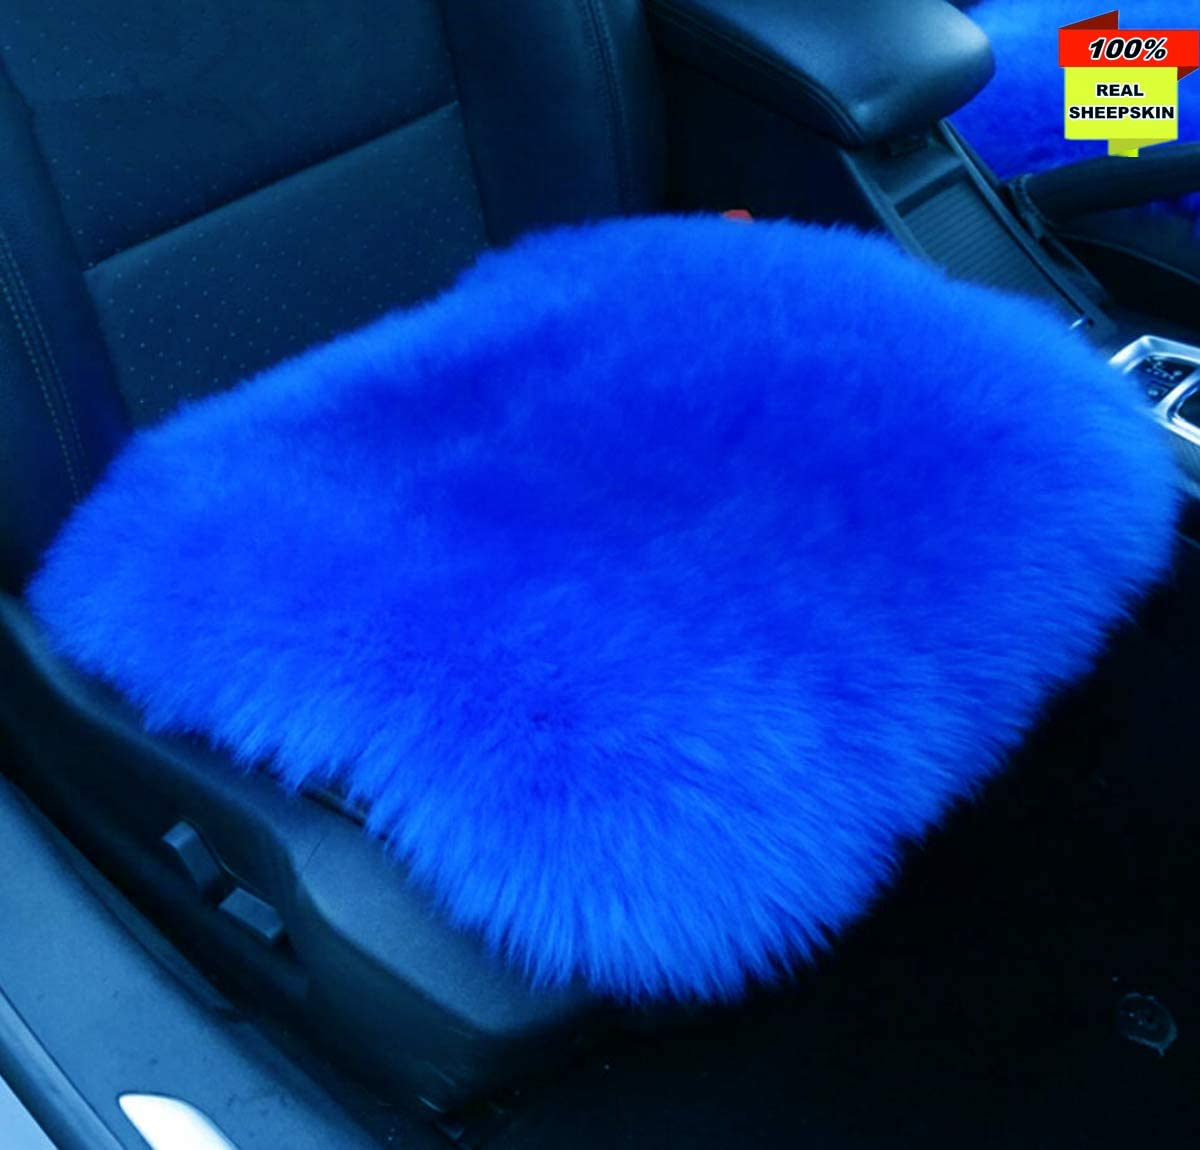 Inzoey Sheepskin Car Front Seat Cover Pad 18x18inch Long Wool Seat Cushion Winter Warm Universal Fit Auto, SUV, Truck, Dinner Chair Office Chair Front Royal Blue